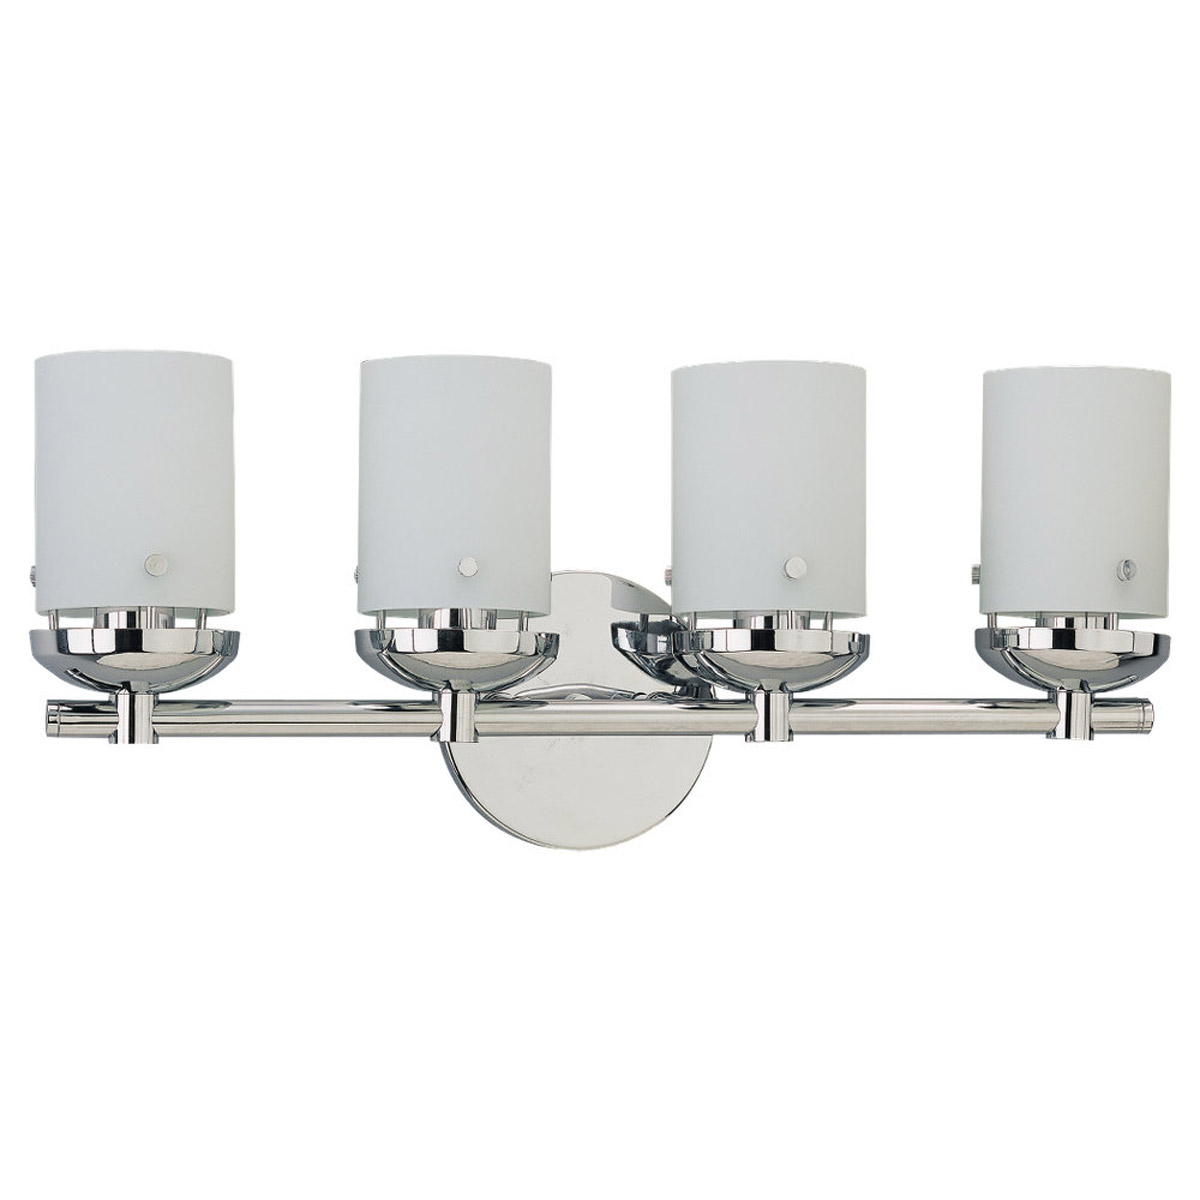 Sea Gull Lighting Bliss 4 Light Bath Vanity in Chrome 40046-05